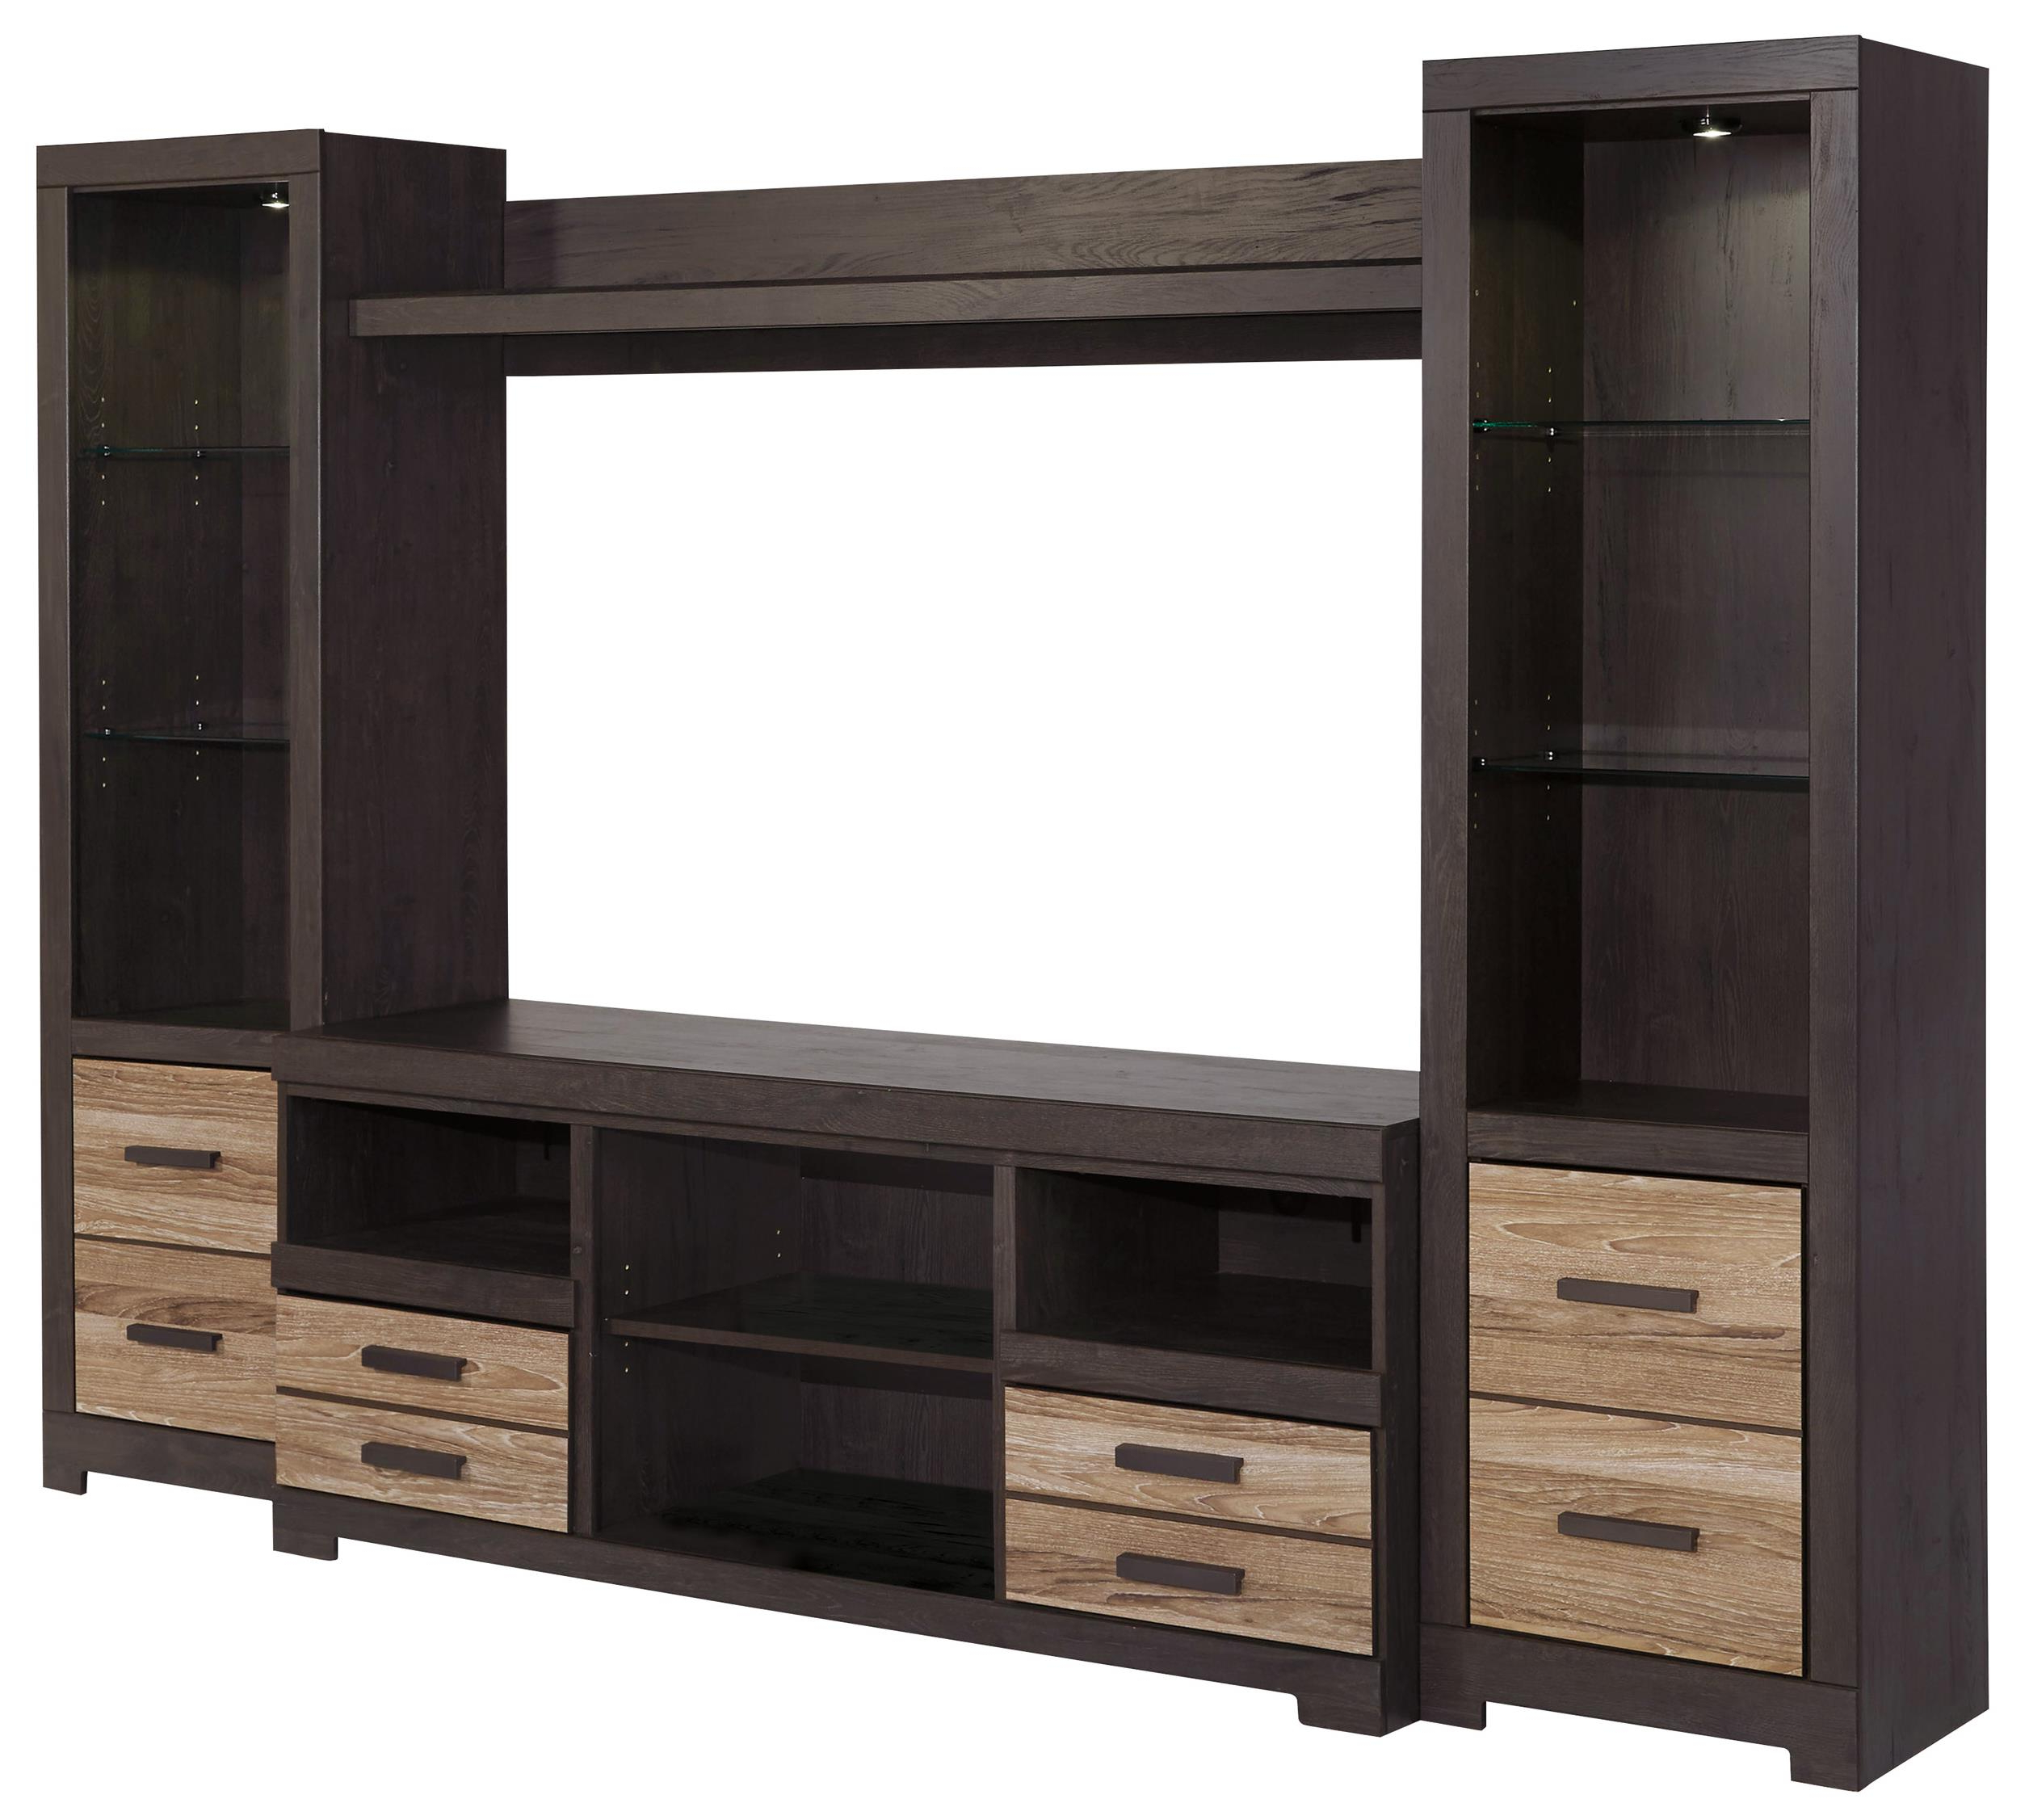 Signature Designashley Harlinton Large Tv Stand & 2 Tall Piers Within Well Known Entertainment Center Tv Stands (View 18 of 20)